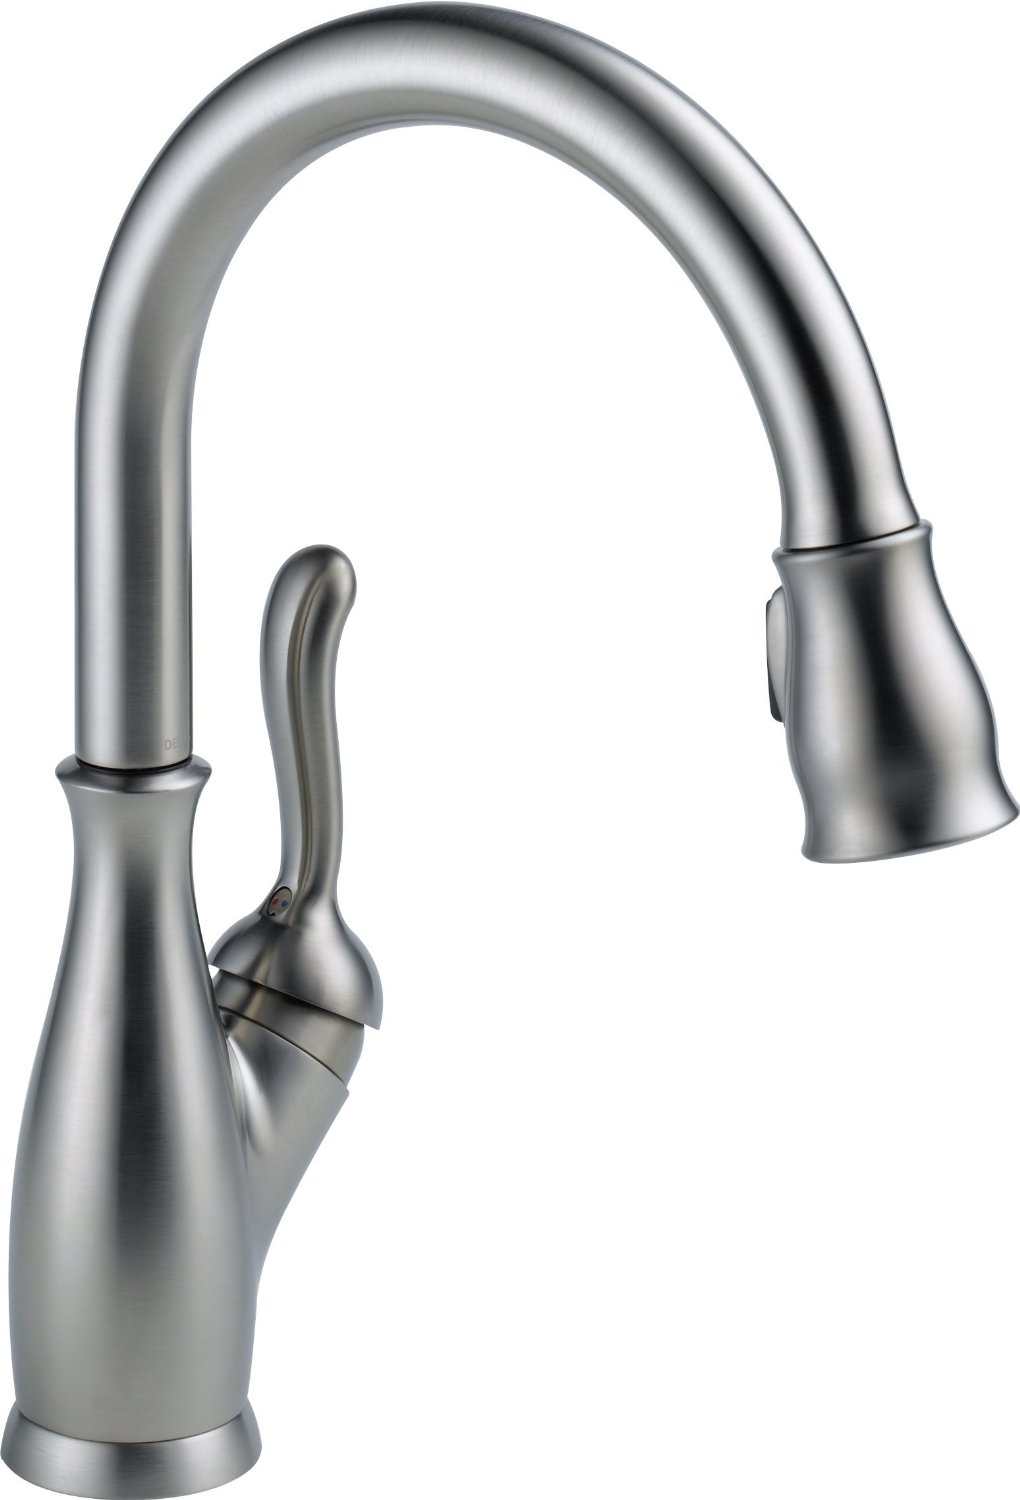 best pull down kitchen faucet under 200 best pull down kitchen faucet under 200 whats the best pull down kitchen faucet faucetshub 1020 x 1500